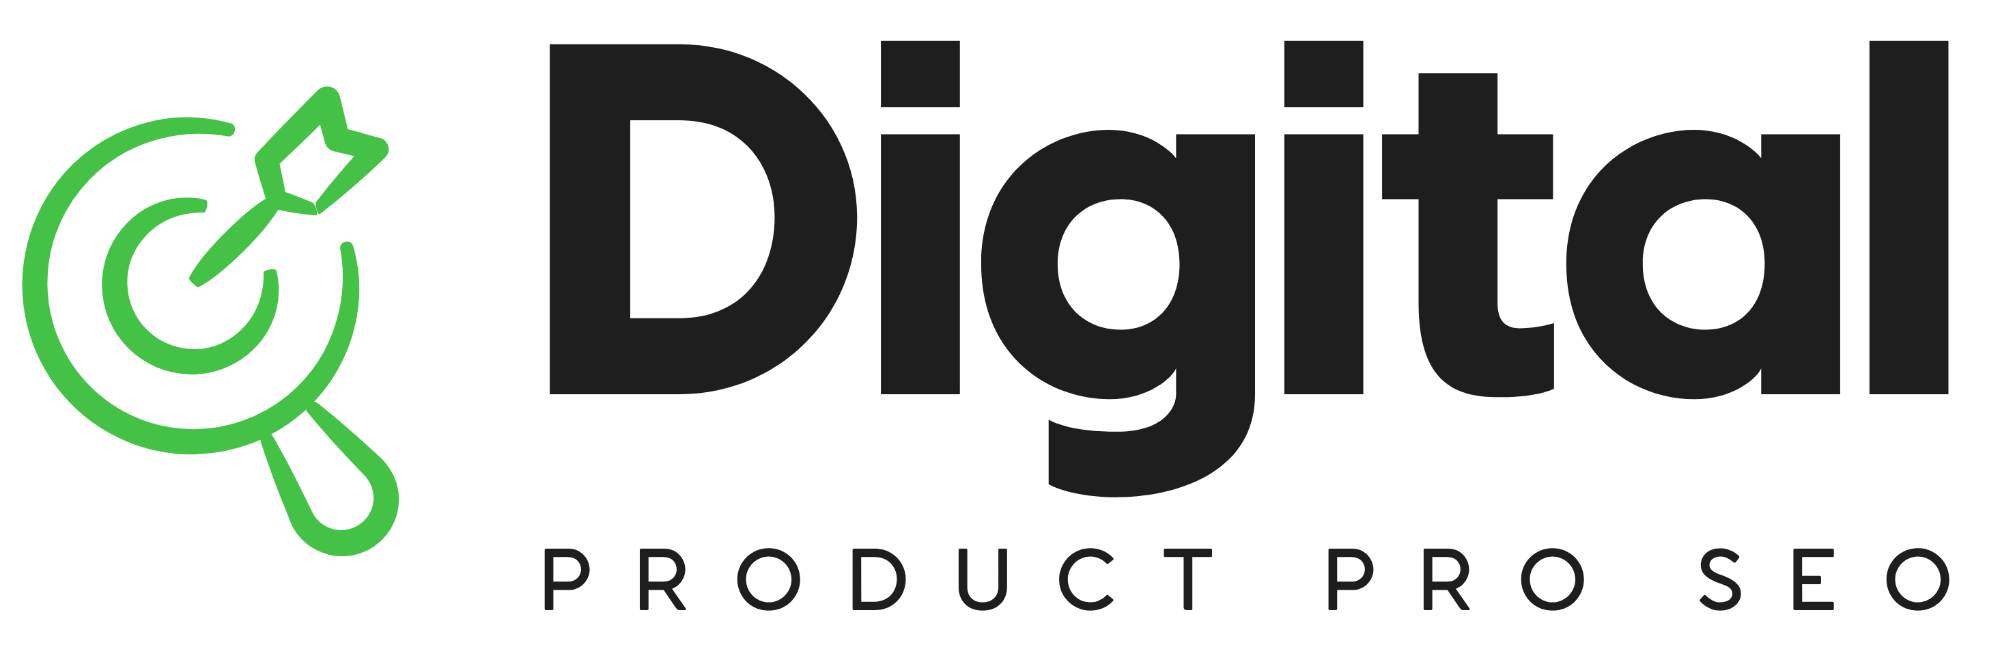 Digital Product Pro SEO